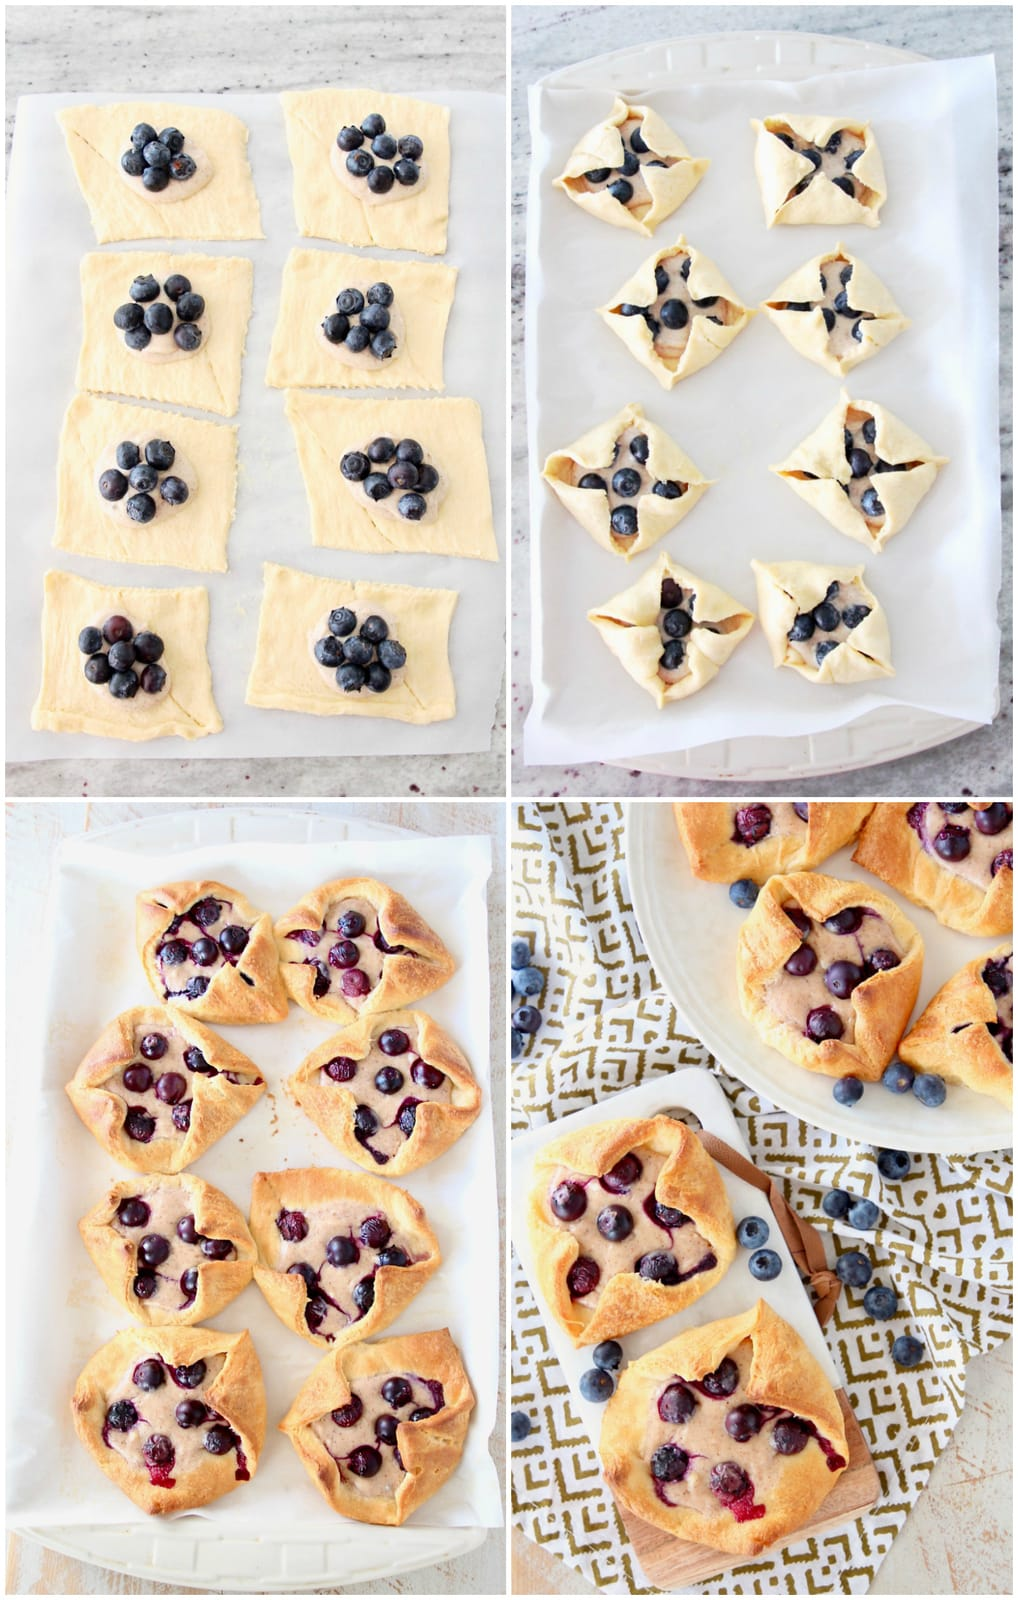 Collage of 4 images showing the making of blueberry pastries